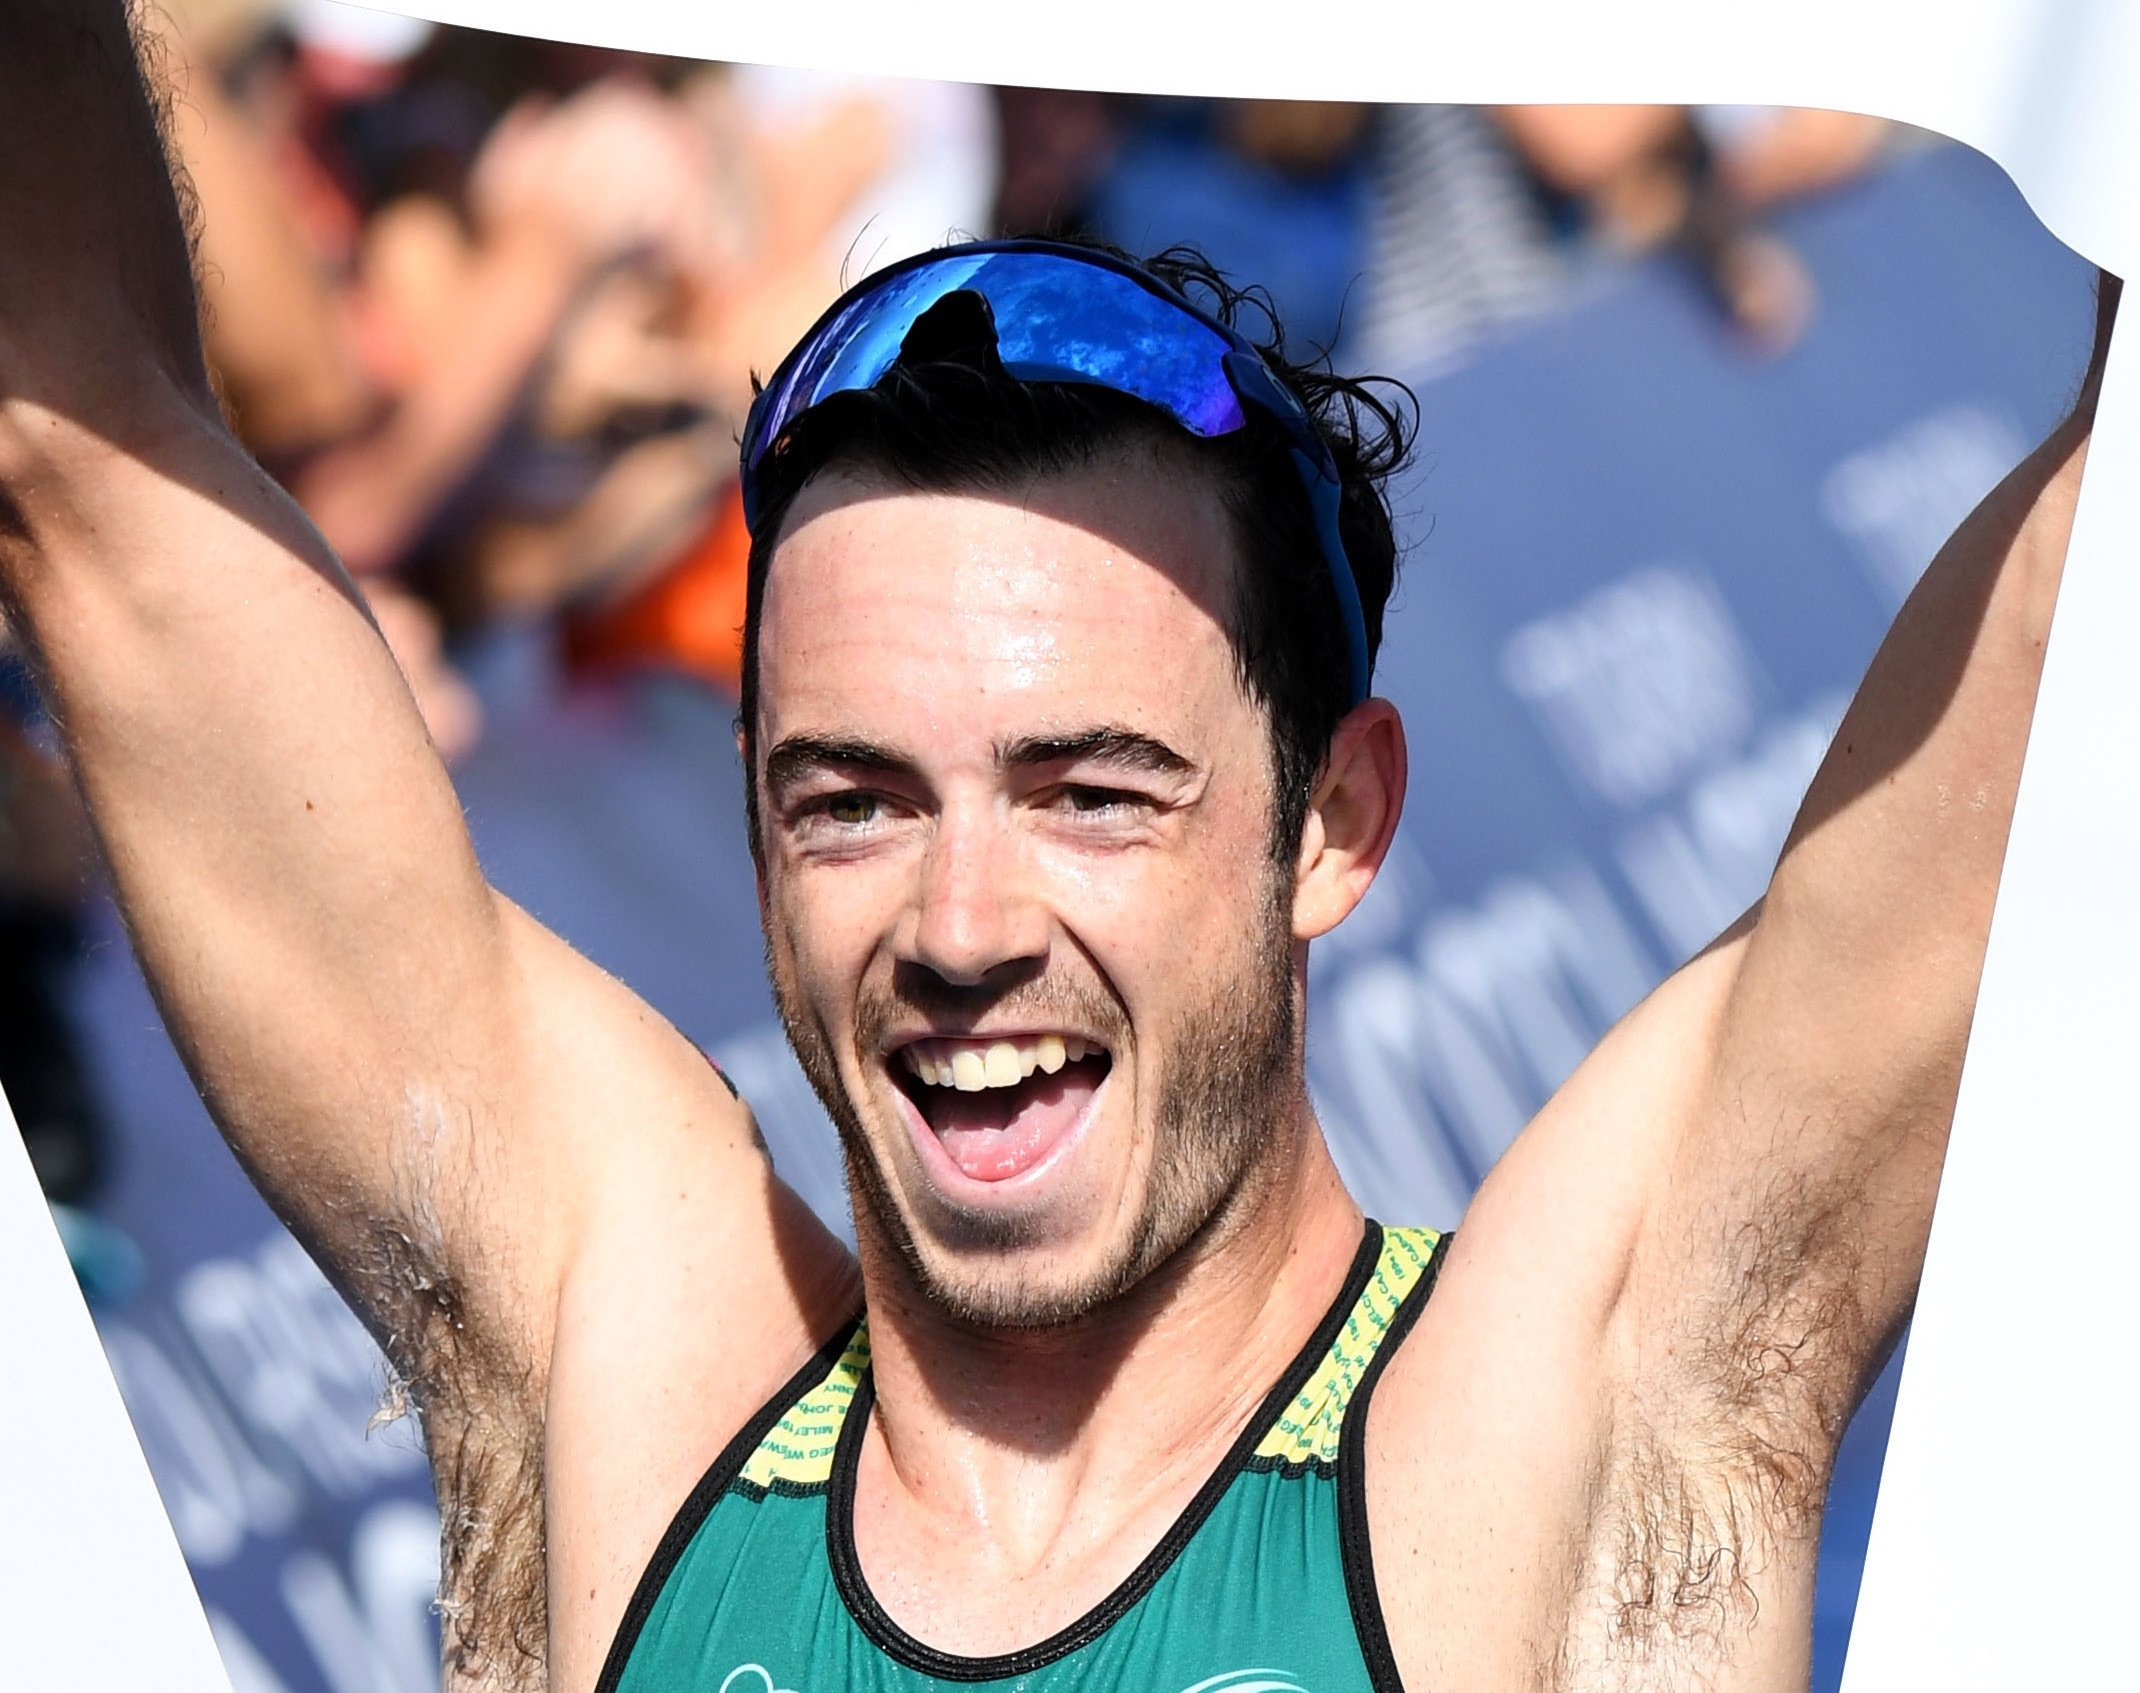 Jake Birtwhistle - Australian Triathlon Commonwealth Games and World Champion medalist